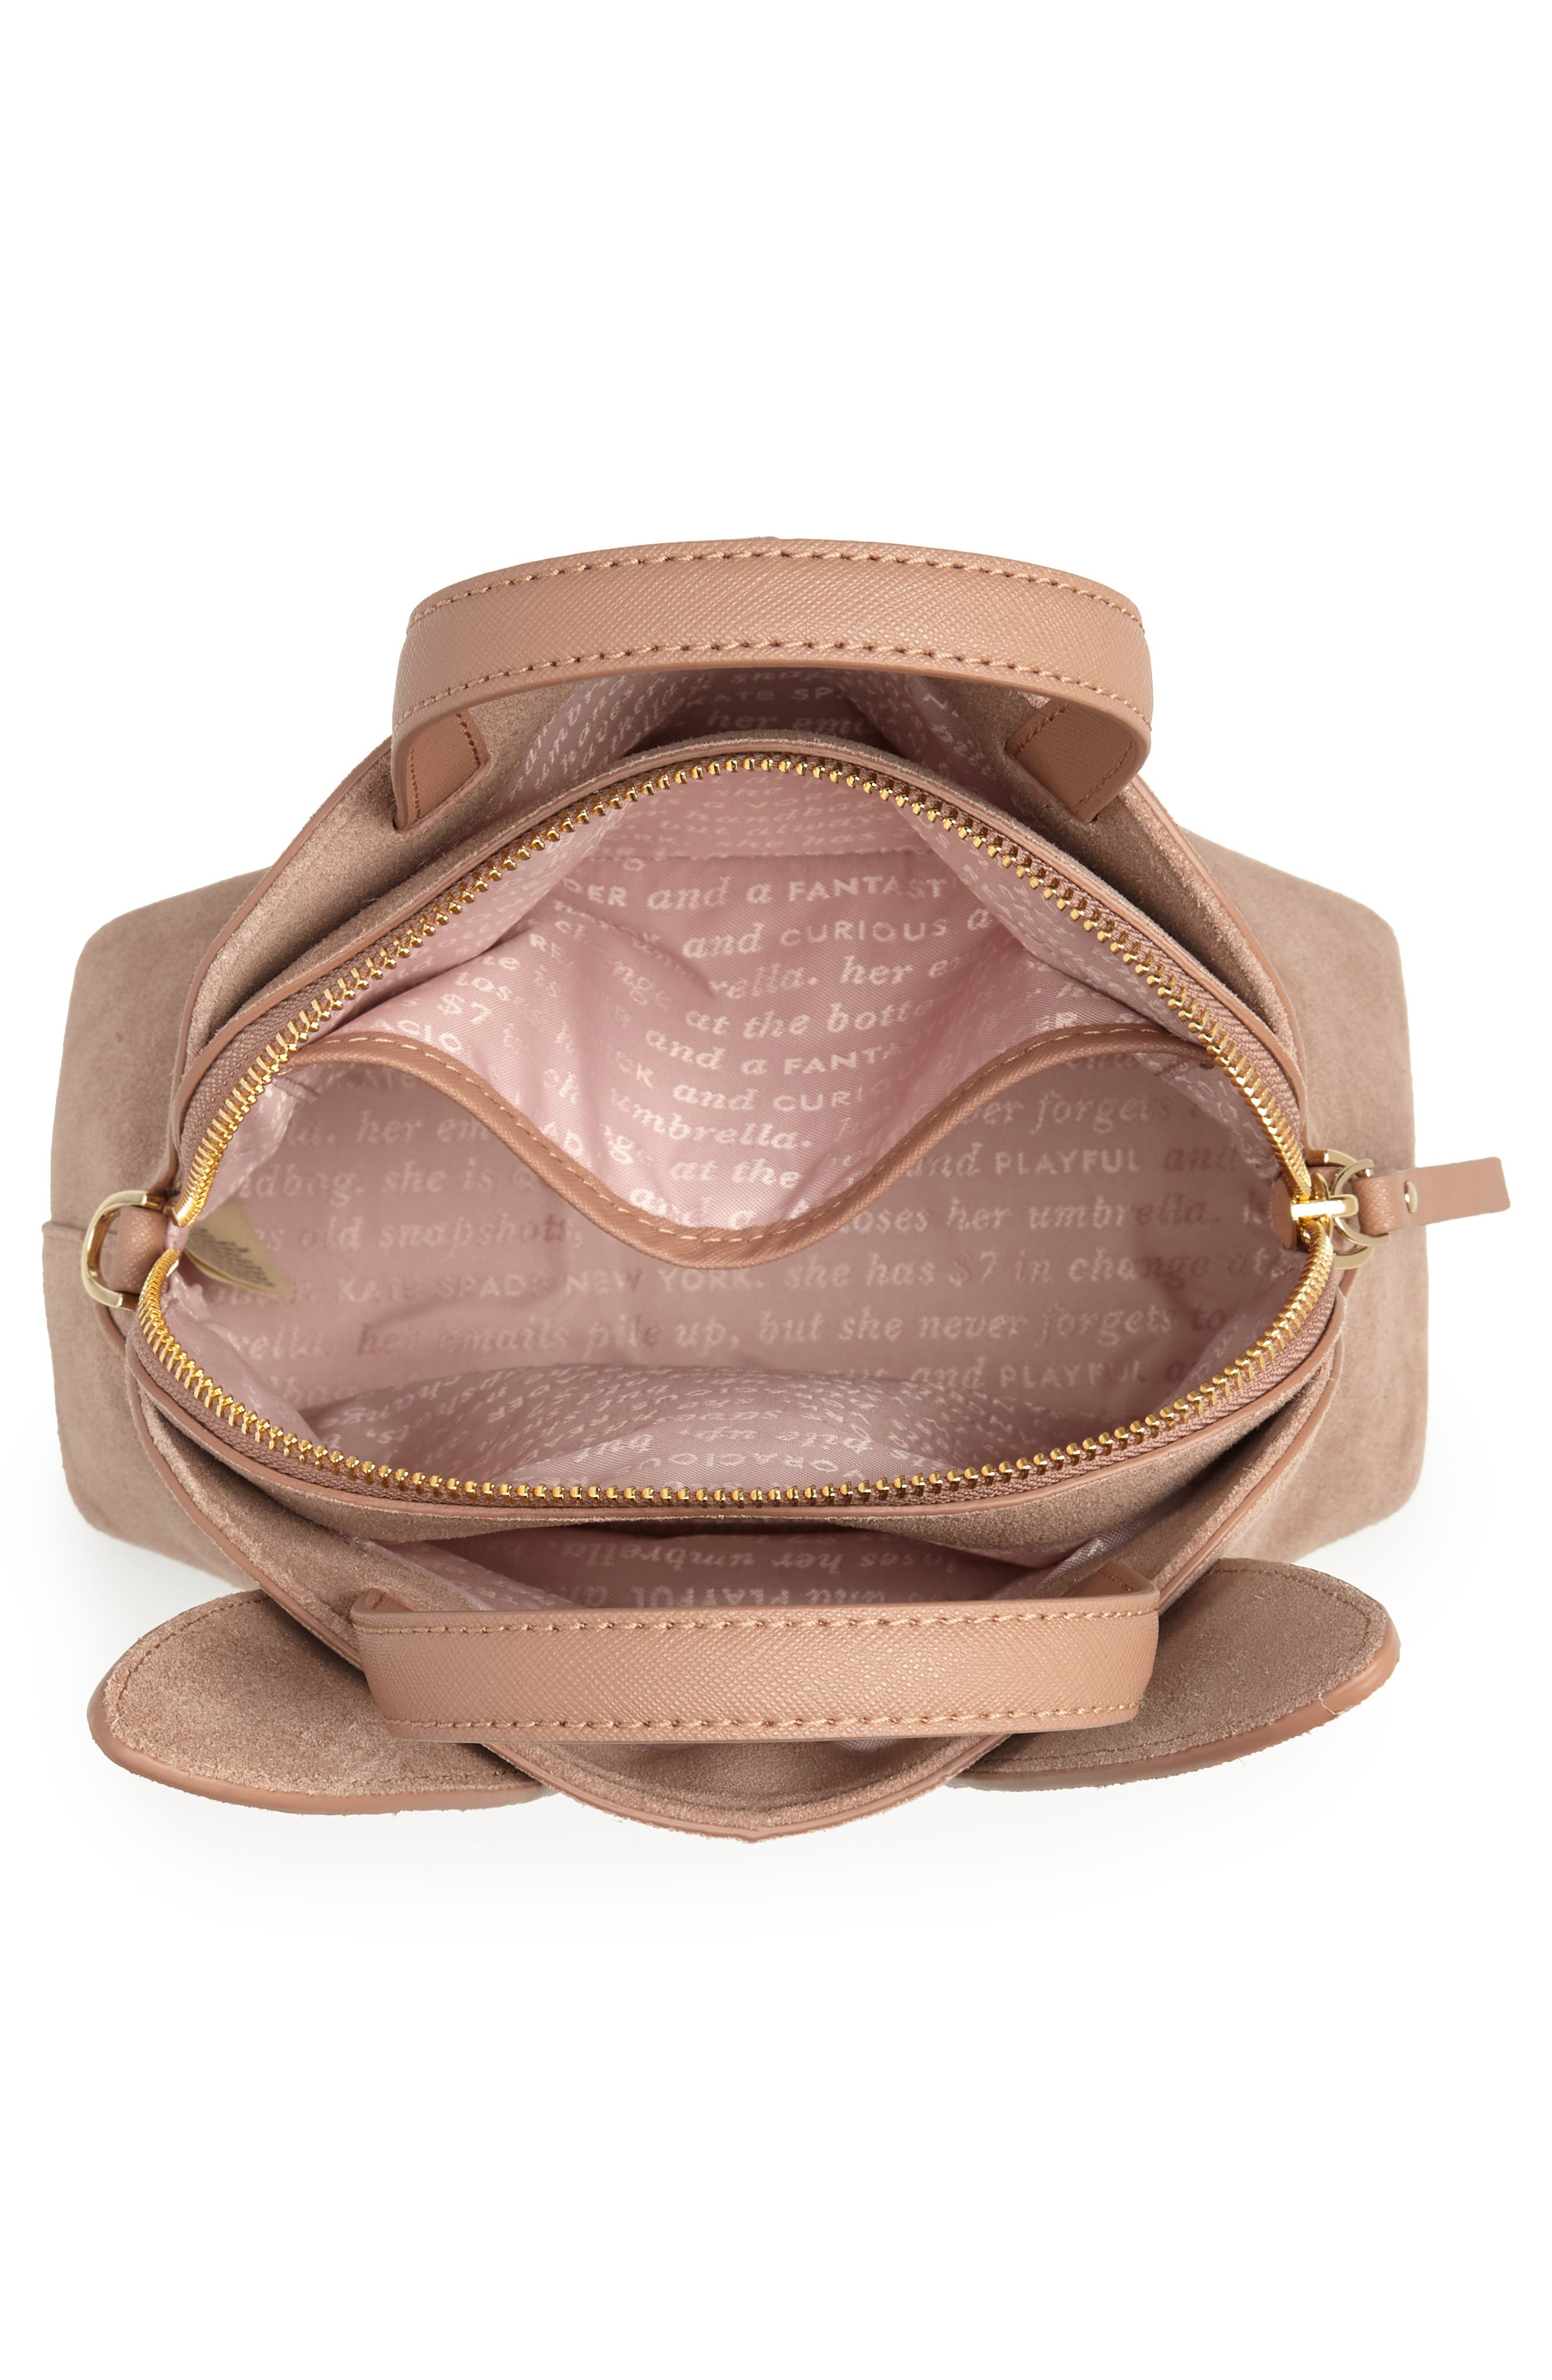 KATE SPADE NEW YORK,                             desert muse rabbit small lotti bag,                             Alternate thumbnail 4, color,                             200